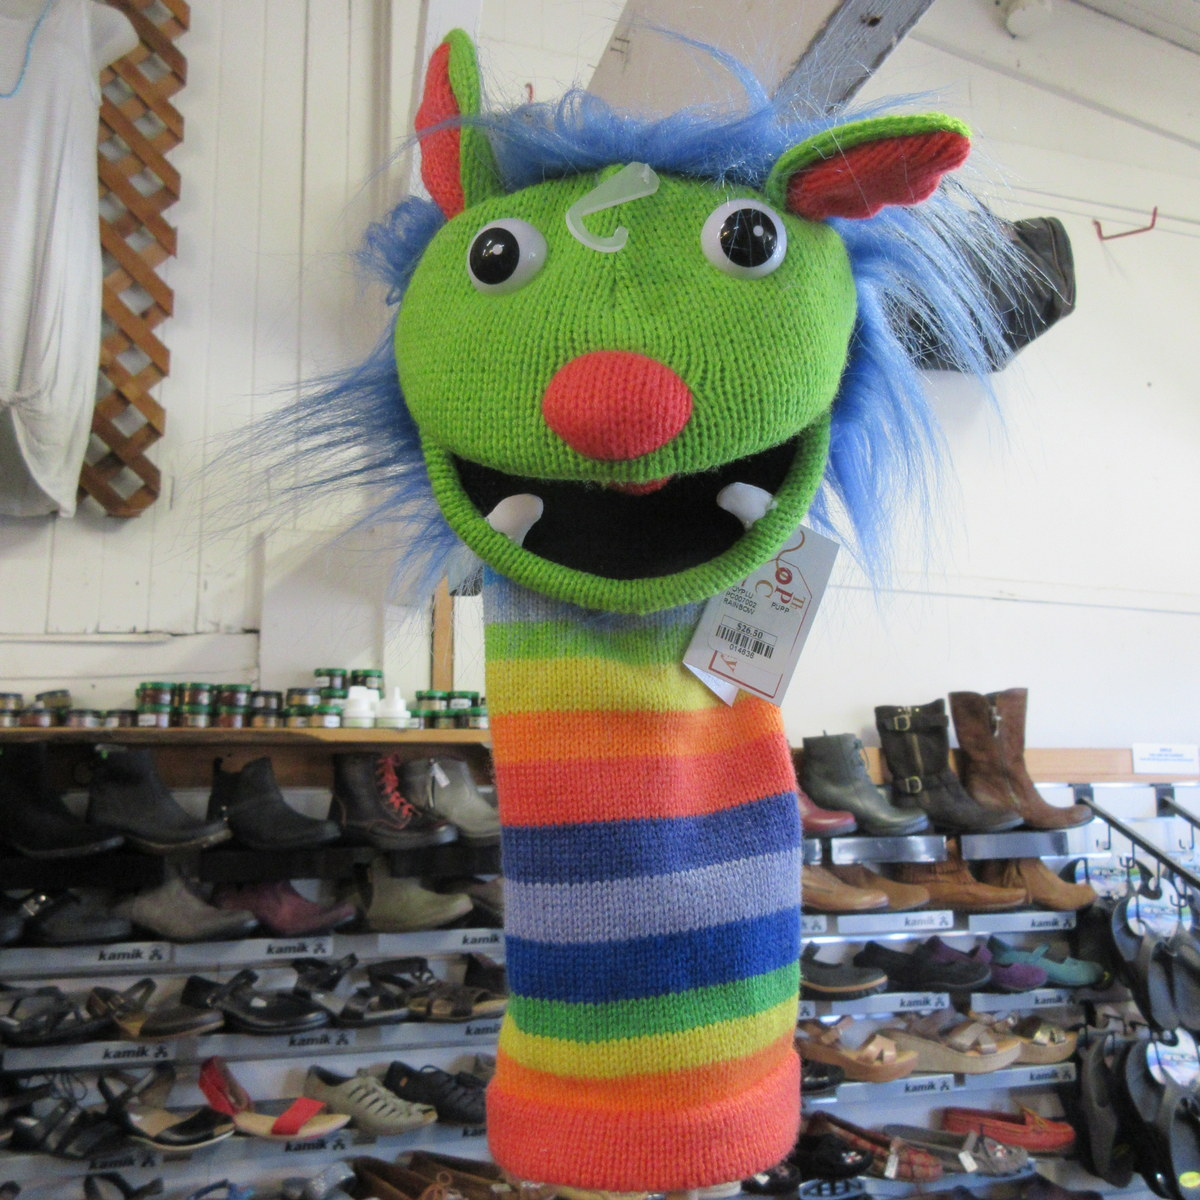 Rainbow Monster Puppet from The Puppet Company